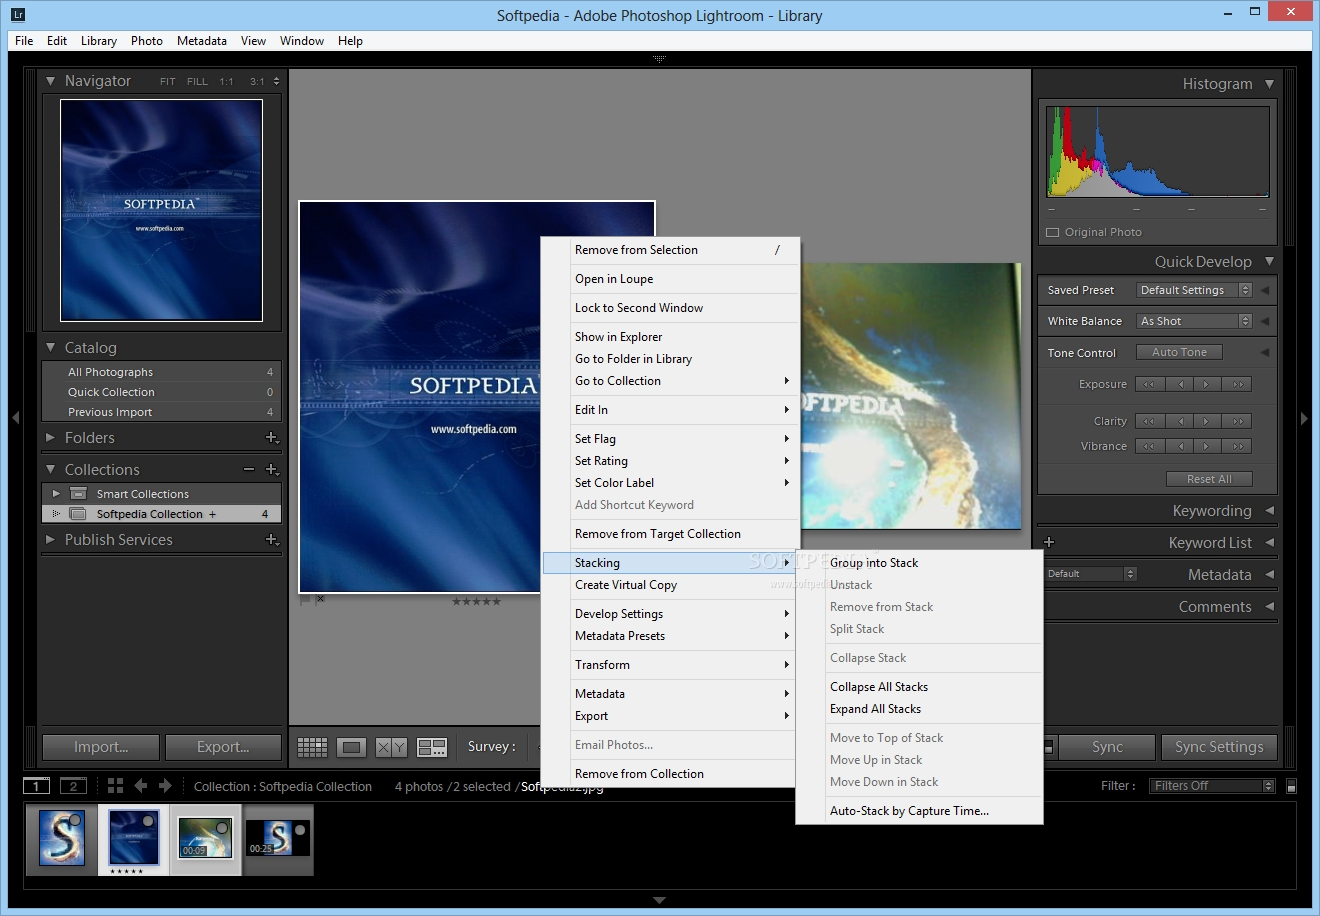 Adobe Photoshop Lightroom screenshot 1 - Adobe Photoshop Lightroom will help you simplify photography from shoot to finish